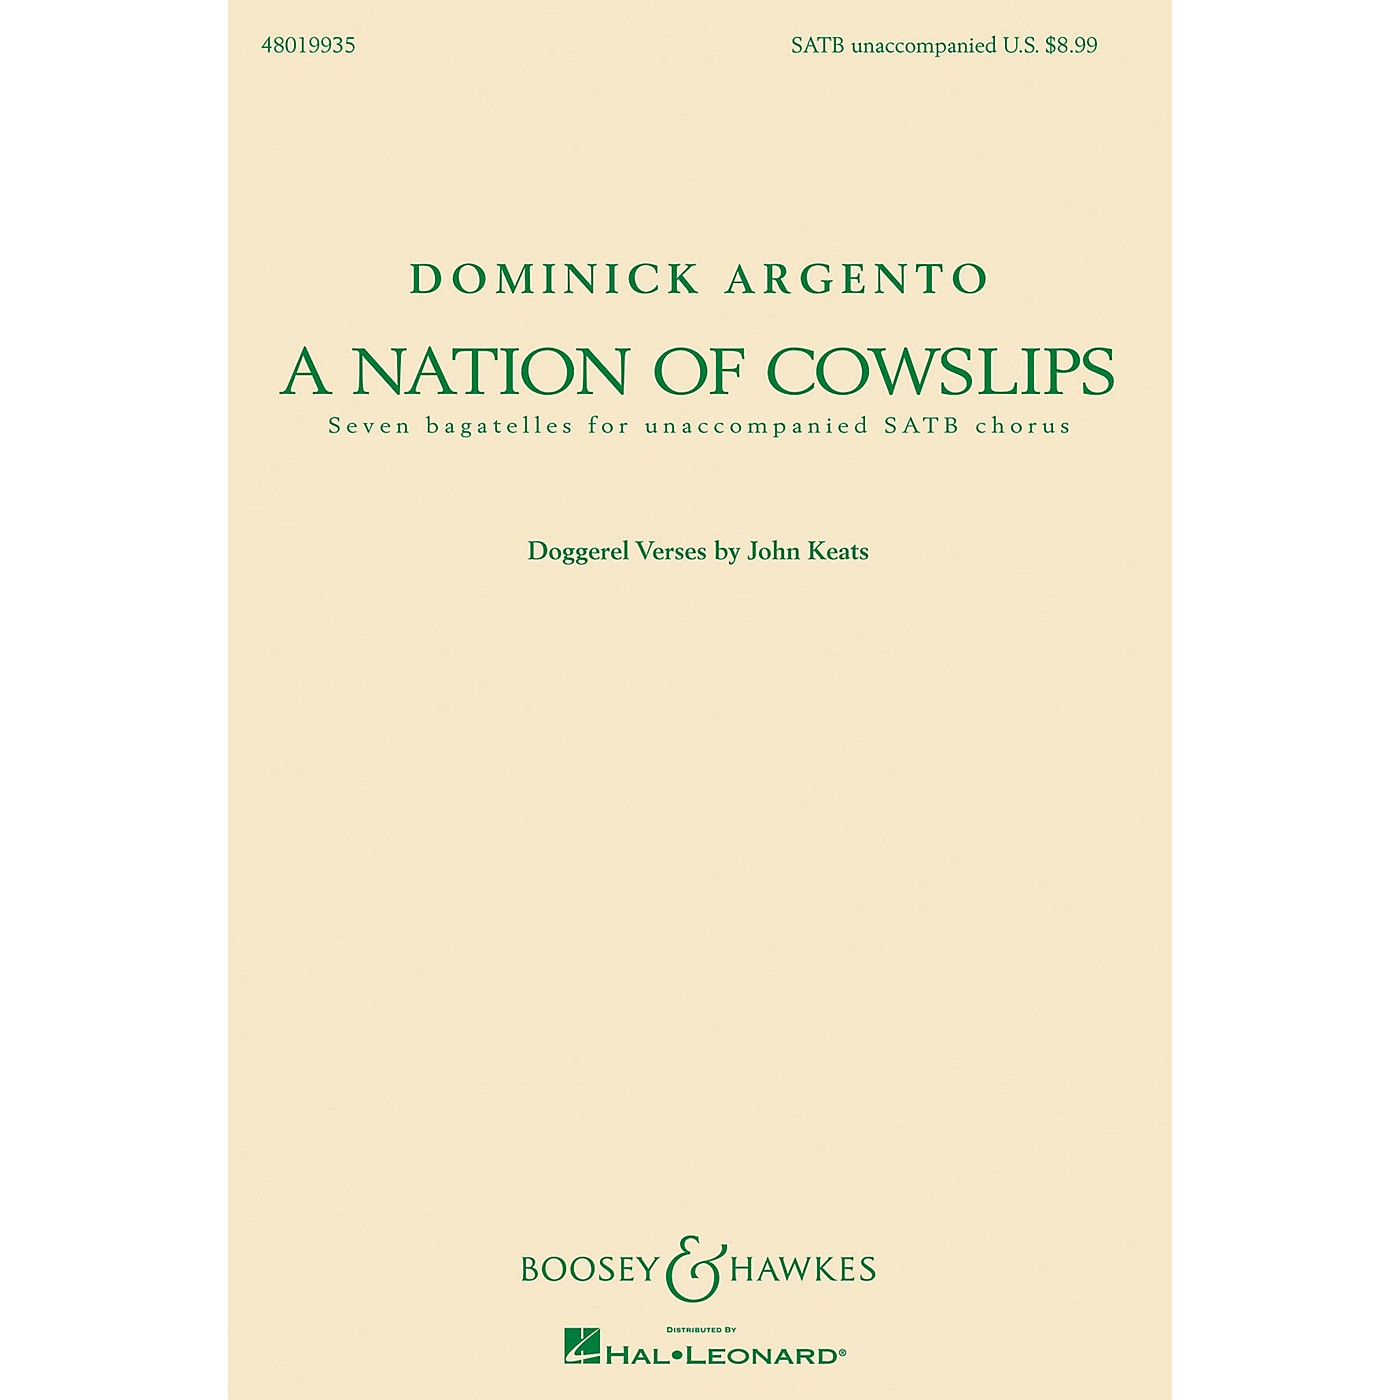 Boosey and Hawkes A Nation of Cowslips (Seven Bagatelles for Unaccompanied SATB Chorus) SATB composed by Dominick Argento thumbnail